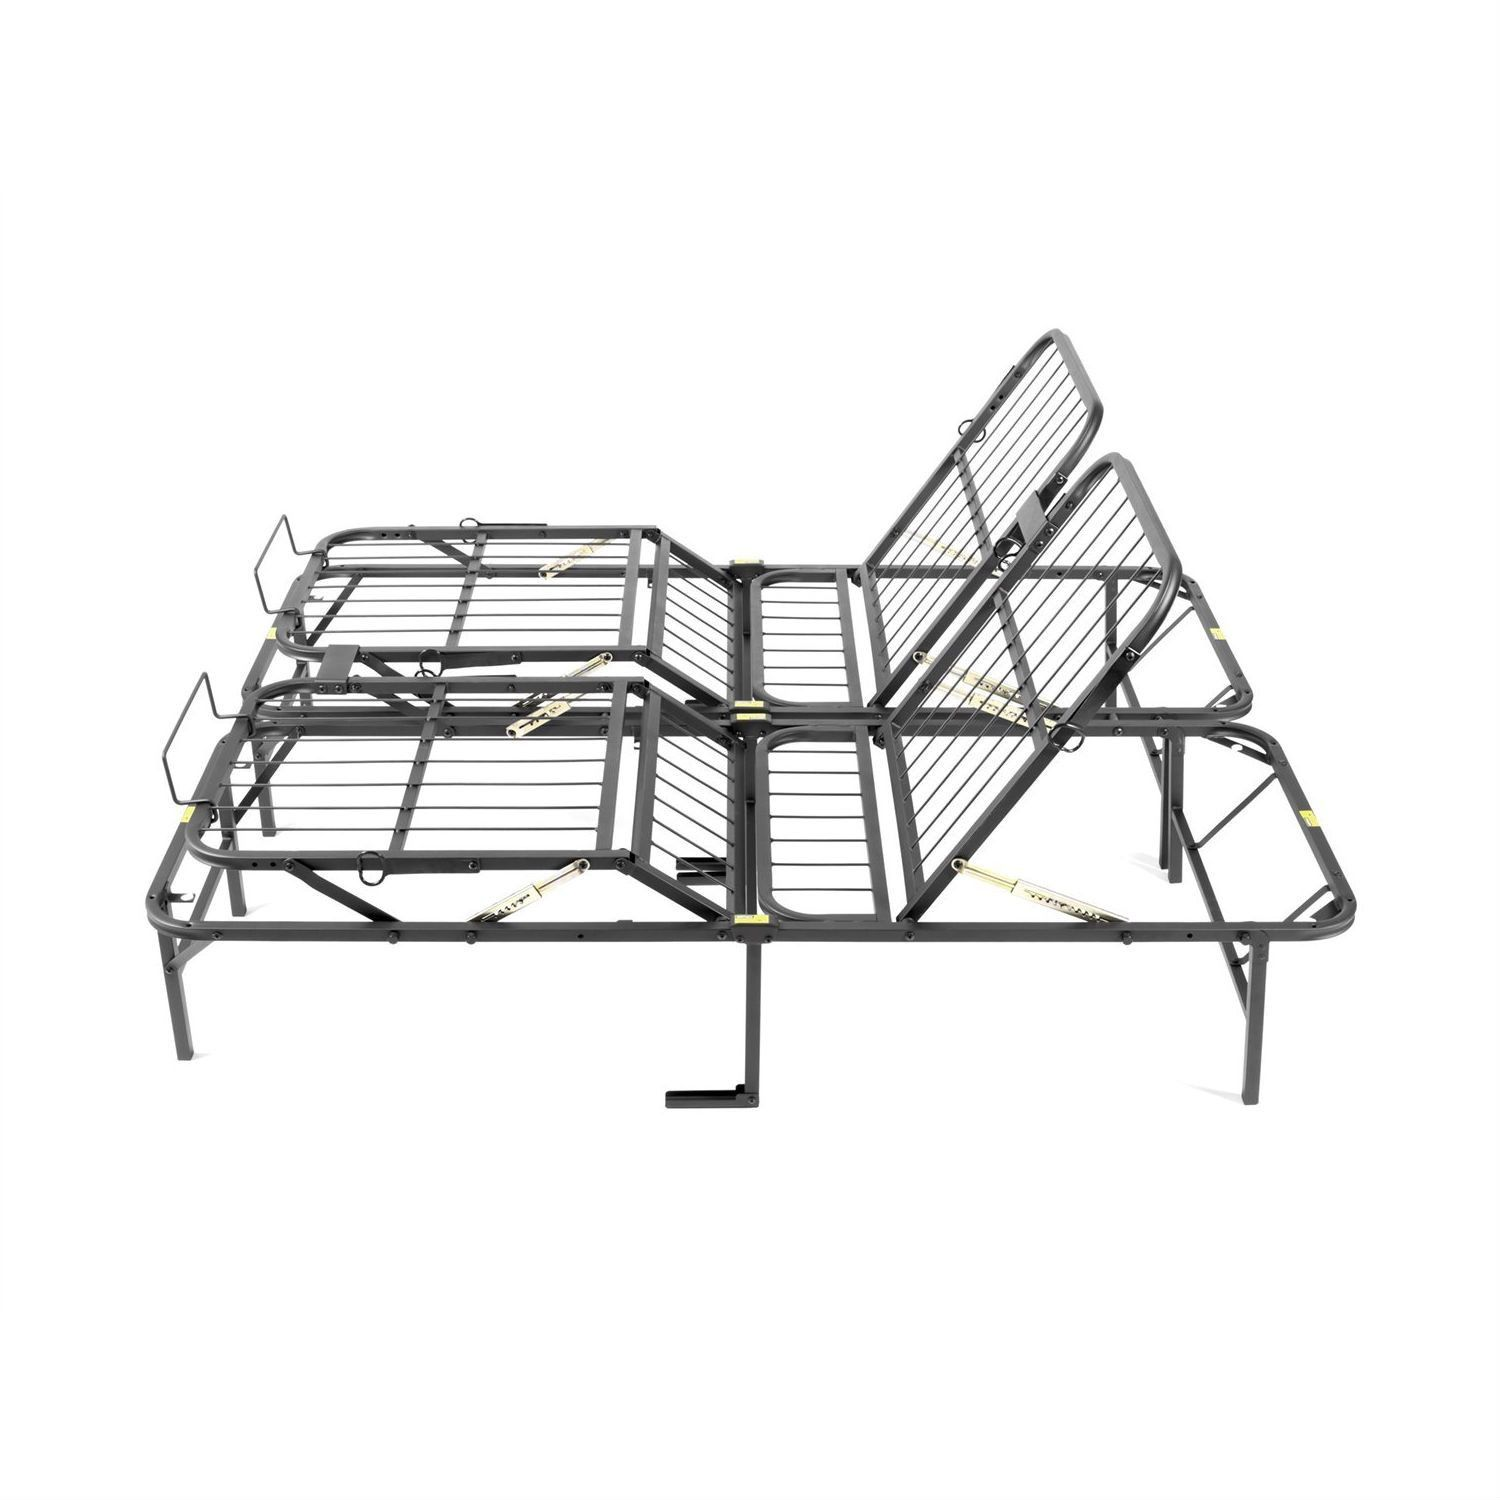 This Queen size Manually Adjustable Bed Frame brings a